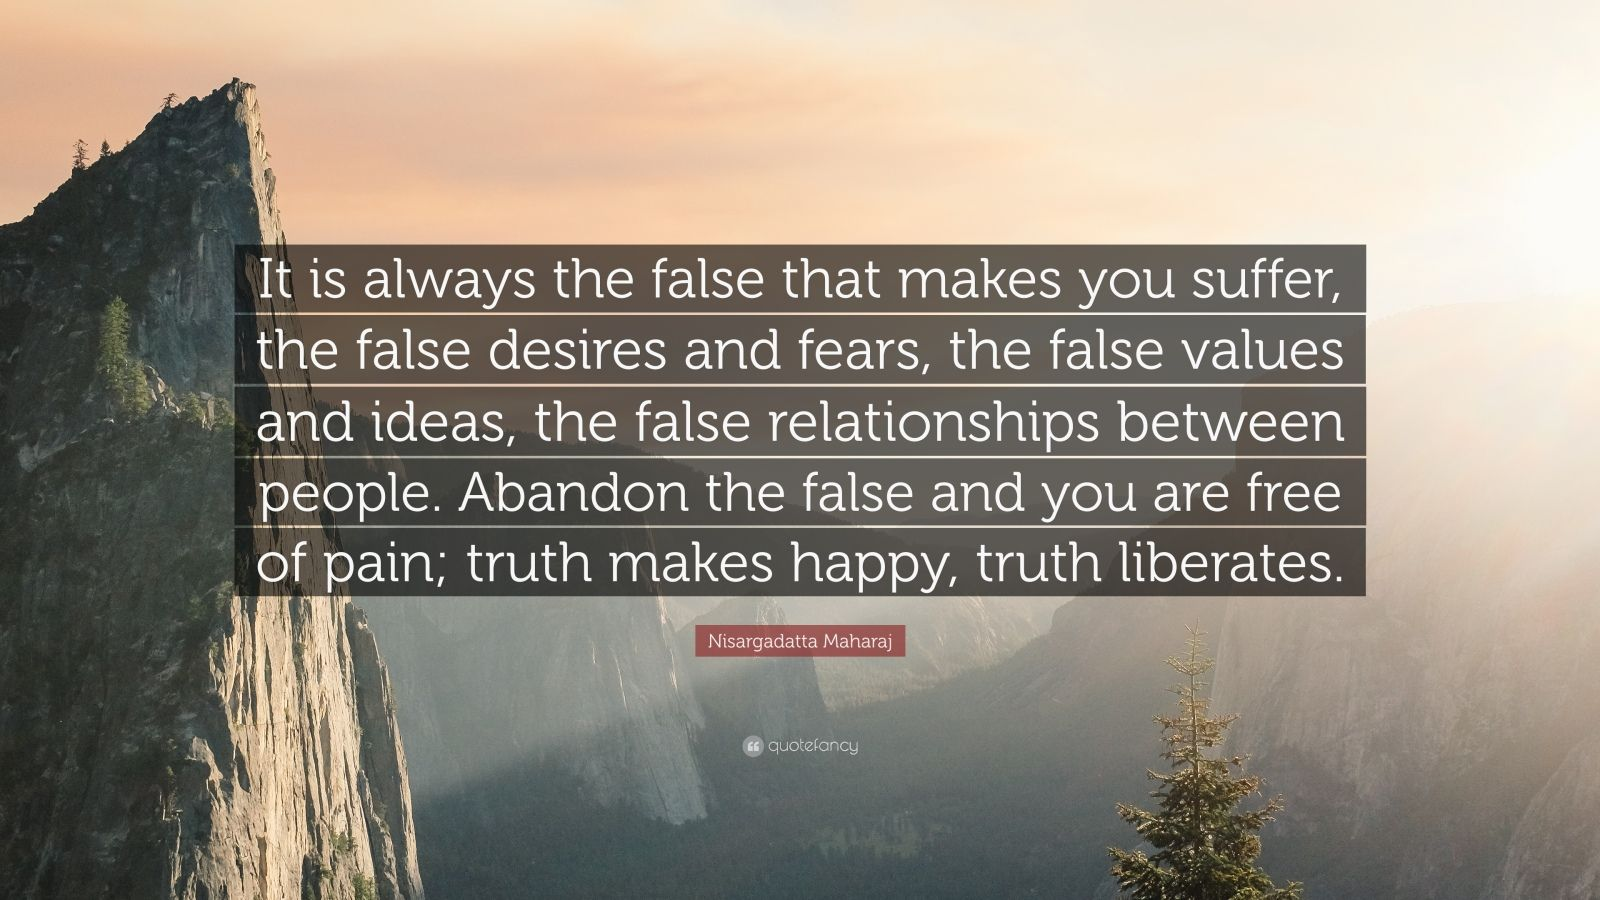 """Nisargadatta Maharaj Quote: """"It is always the false that makes you suffer, the false desires and fears, the false values and ideas, the false relationships between people. Abandon the false and you are free of pain; truth makes happy, truth liberates."""""""